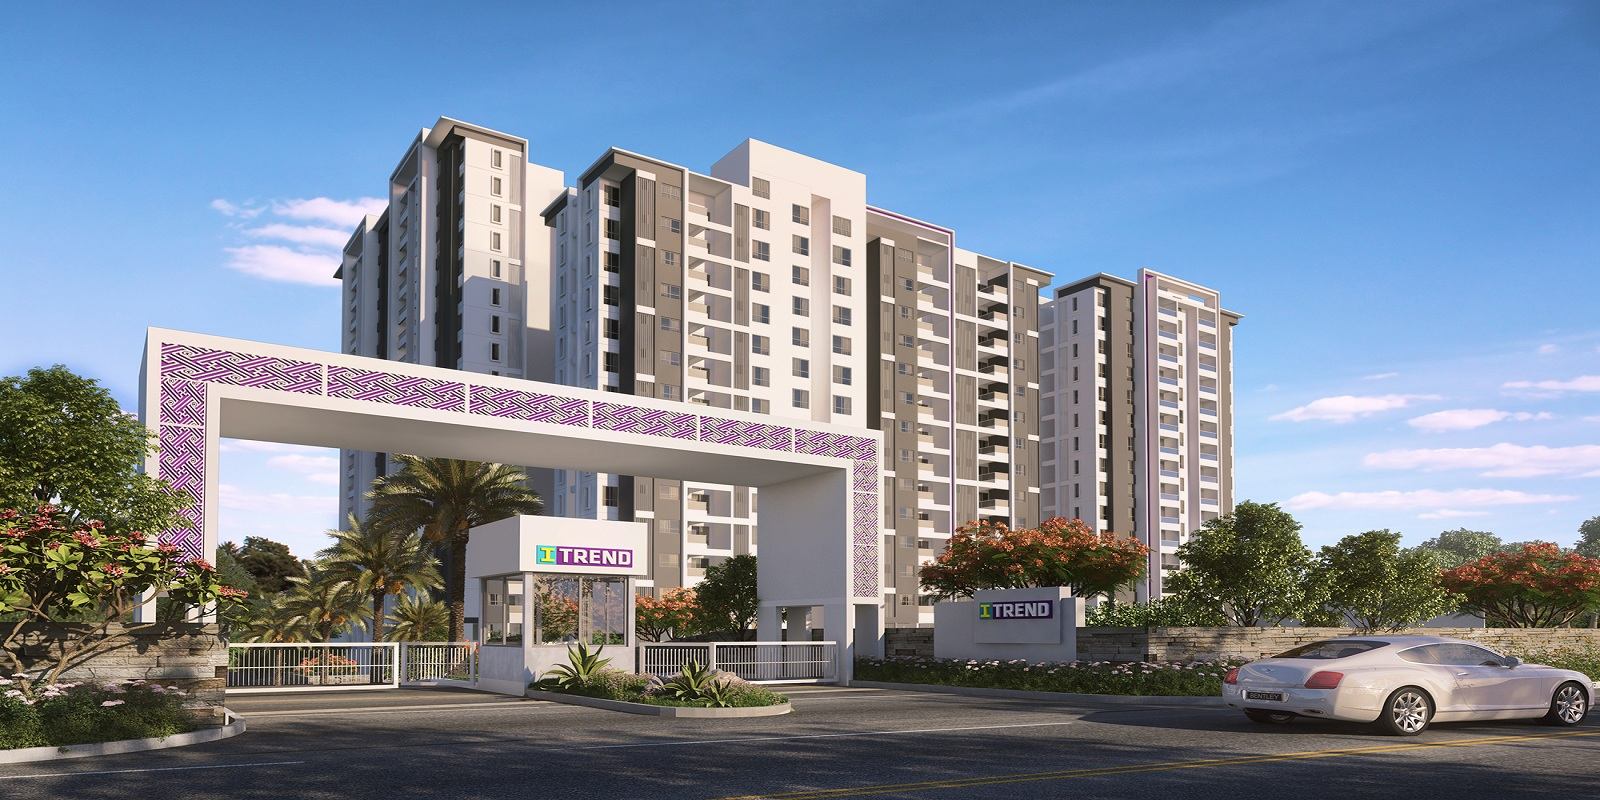 saheel itrend homes project project large image1